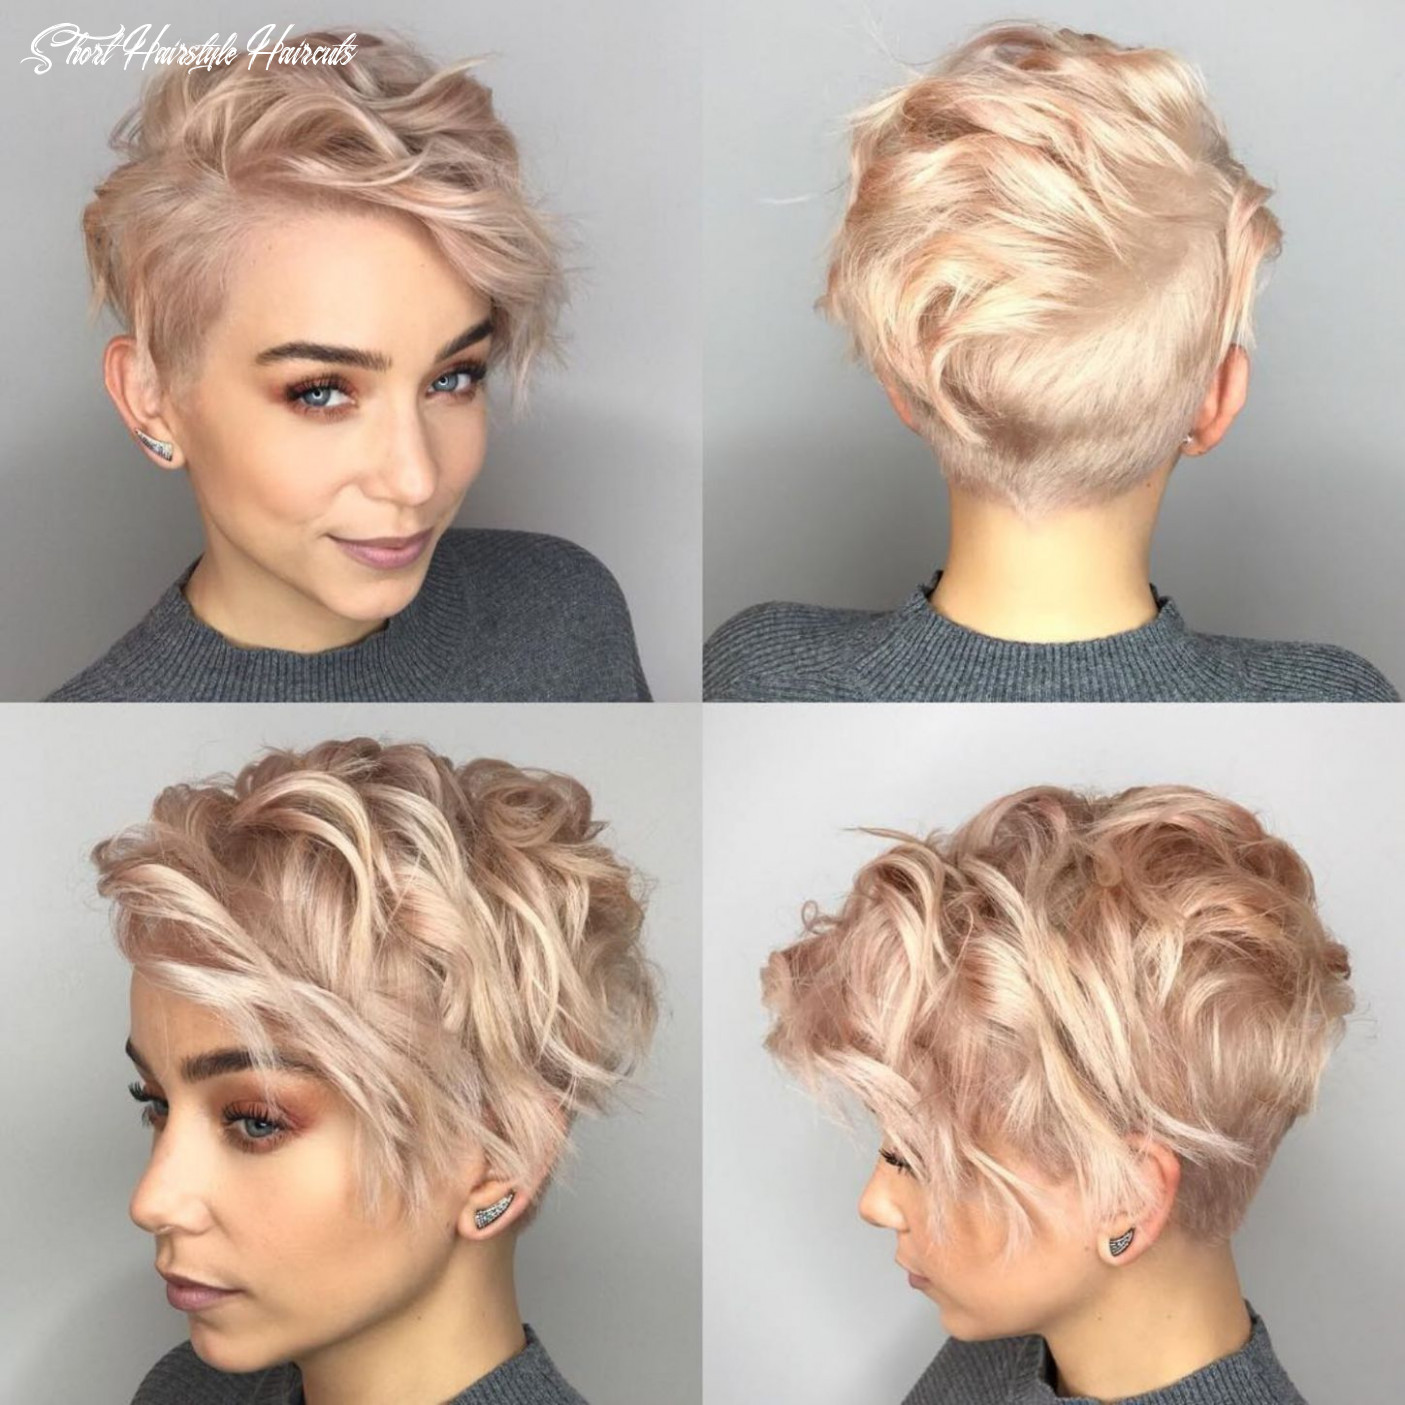 Pixie haircuts with bangs 12 terrific tapers | short hair color